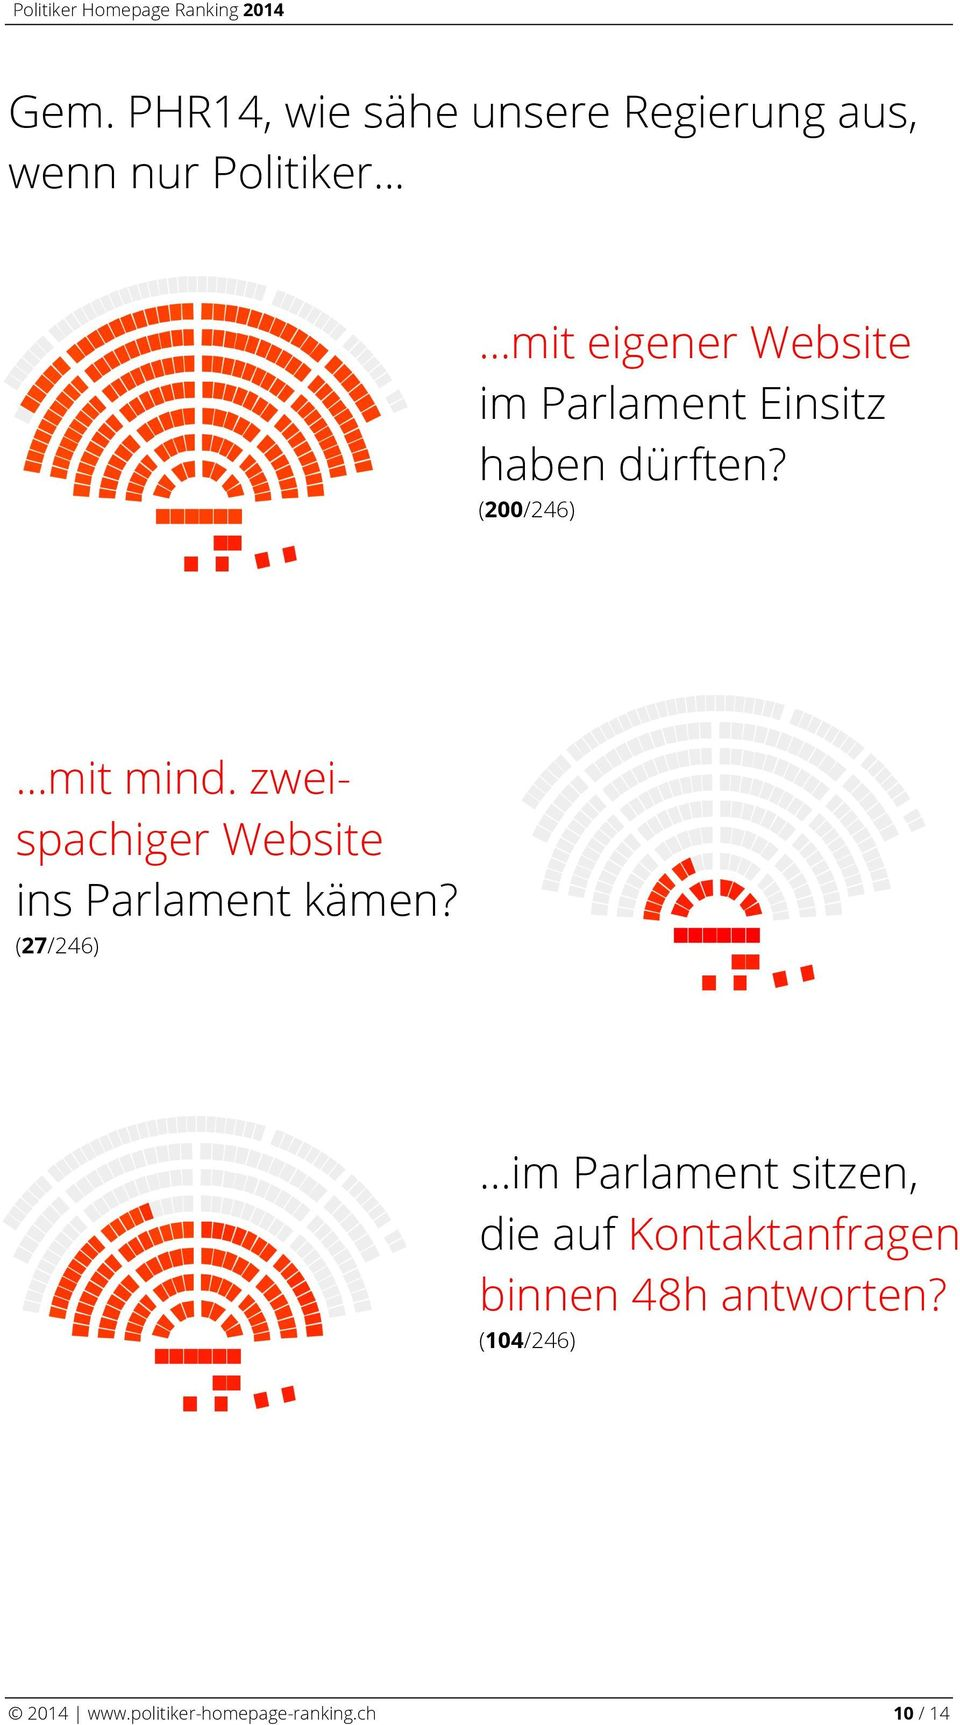 zweispachiger Website ins Parlament kämen? (7/46).